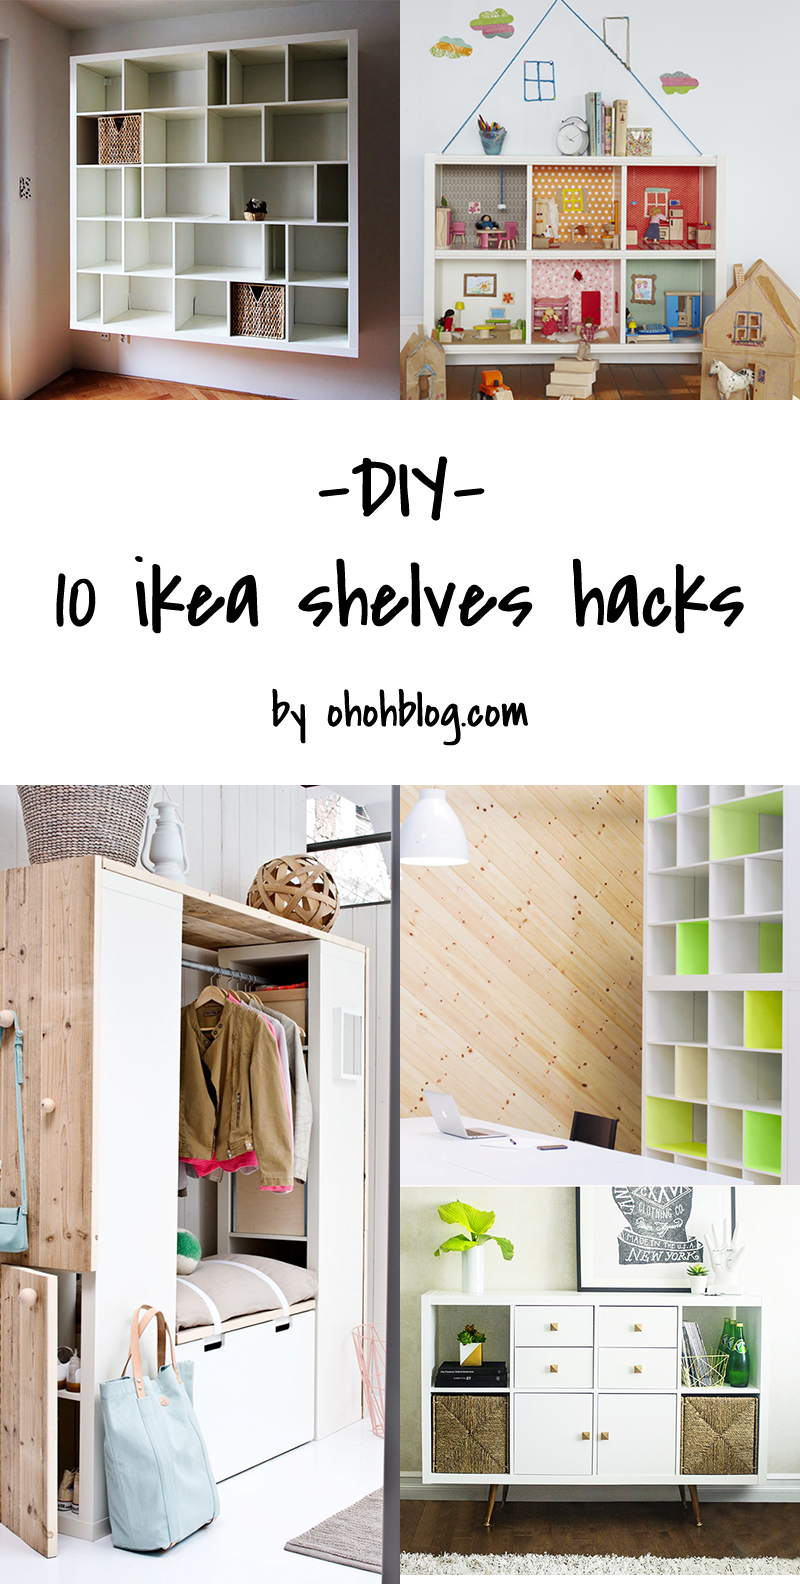 diy to try 10 ikea shelves hacks ohoh blog. Black Bedroom Furniture Sets. Home Design Ideas